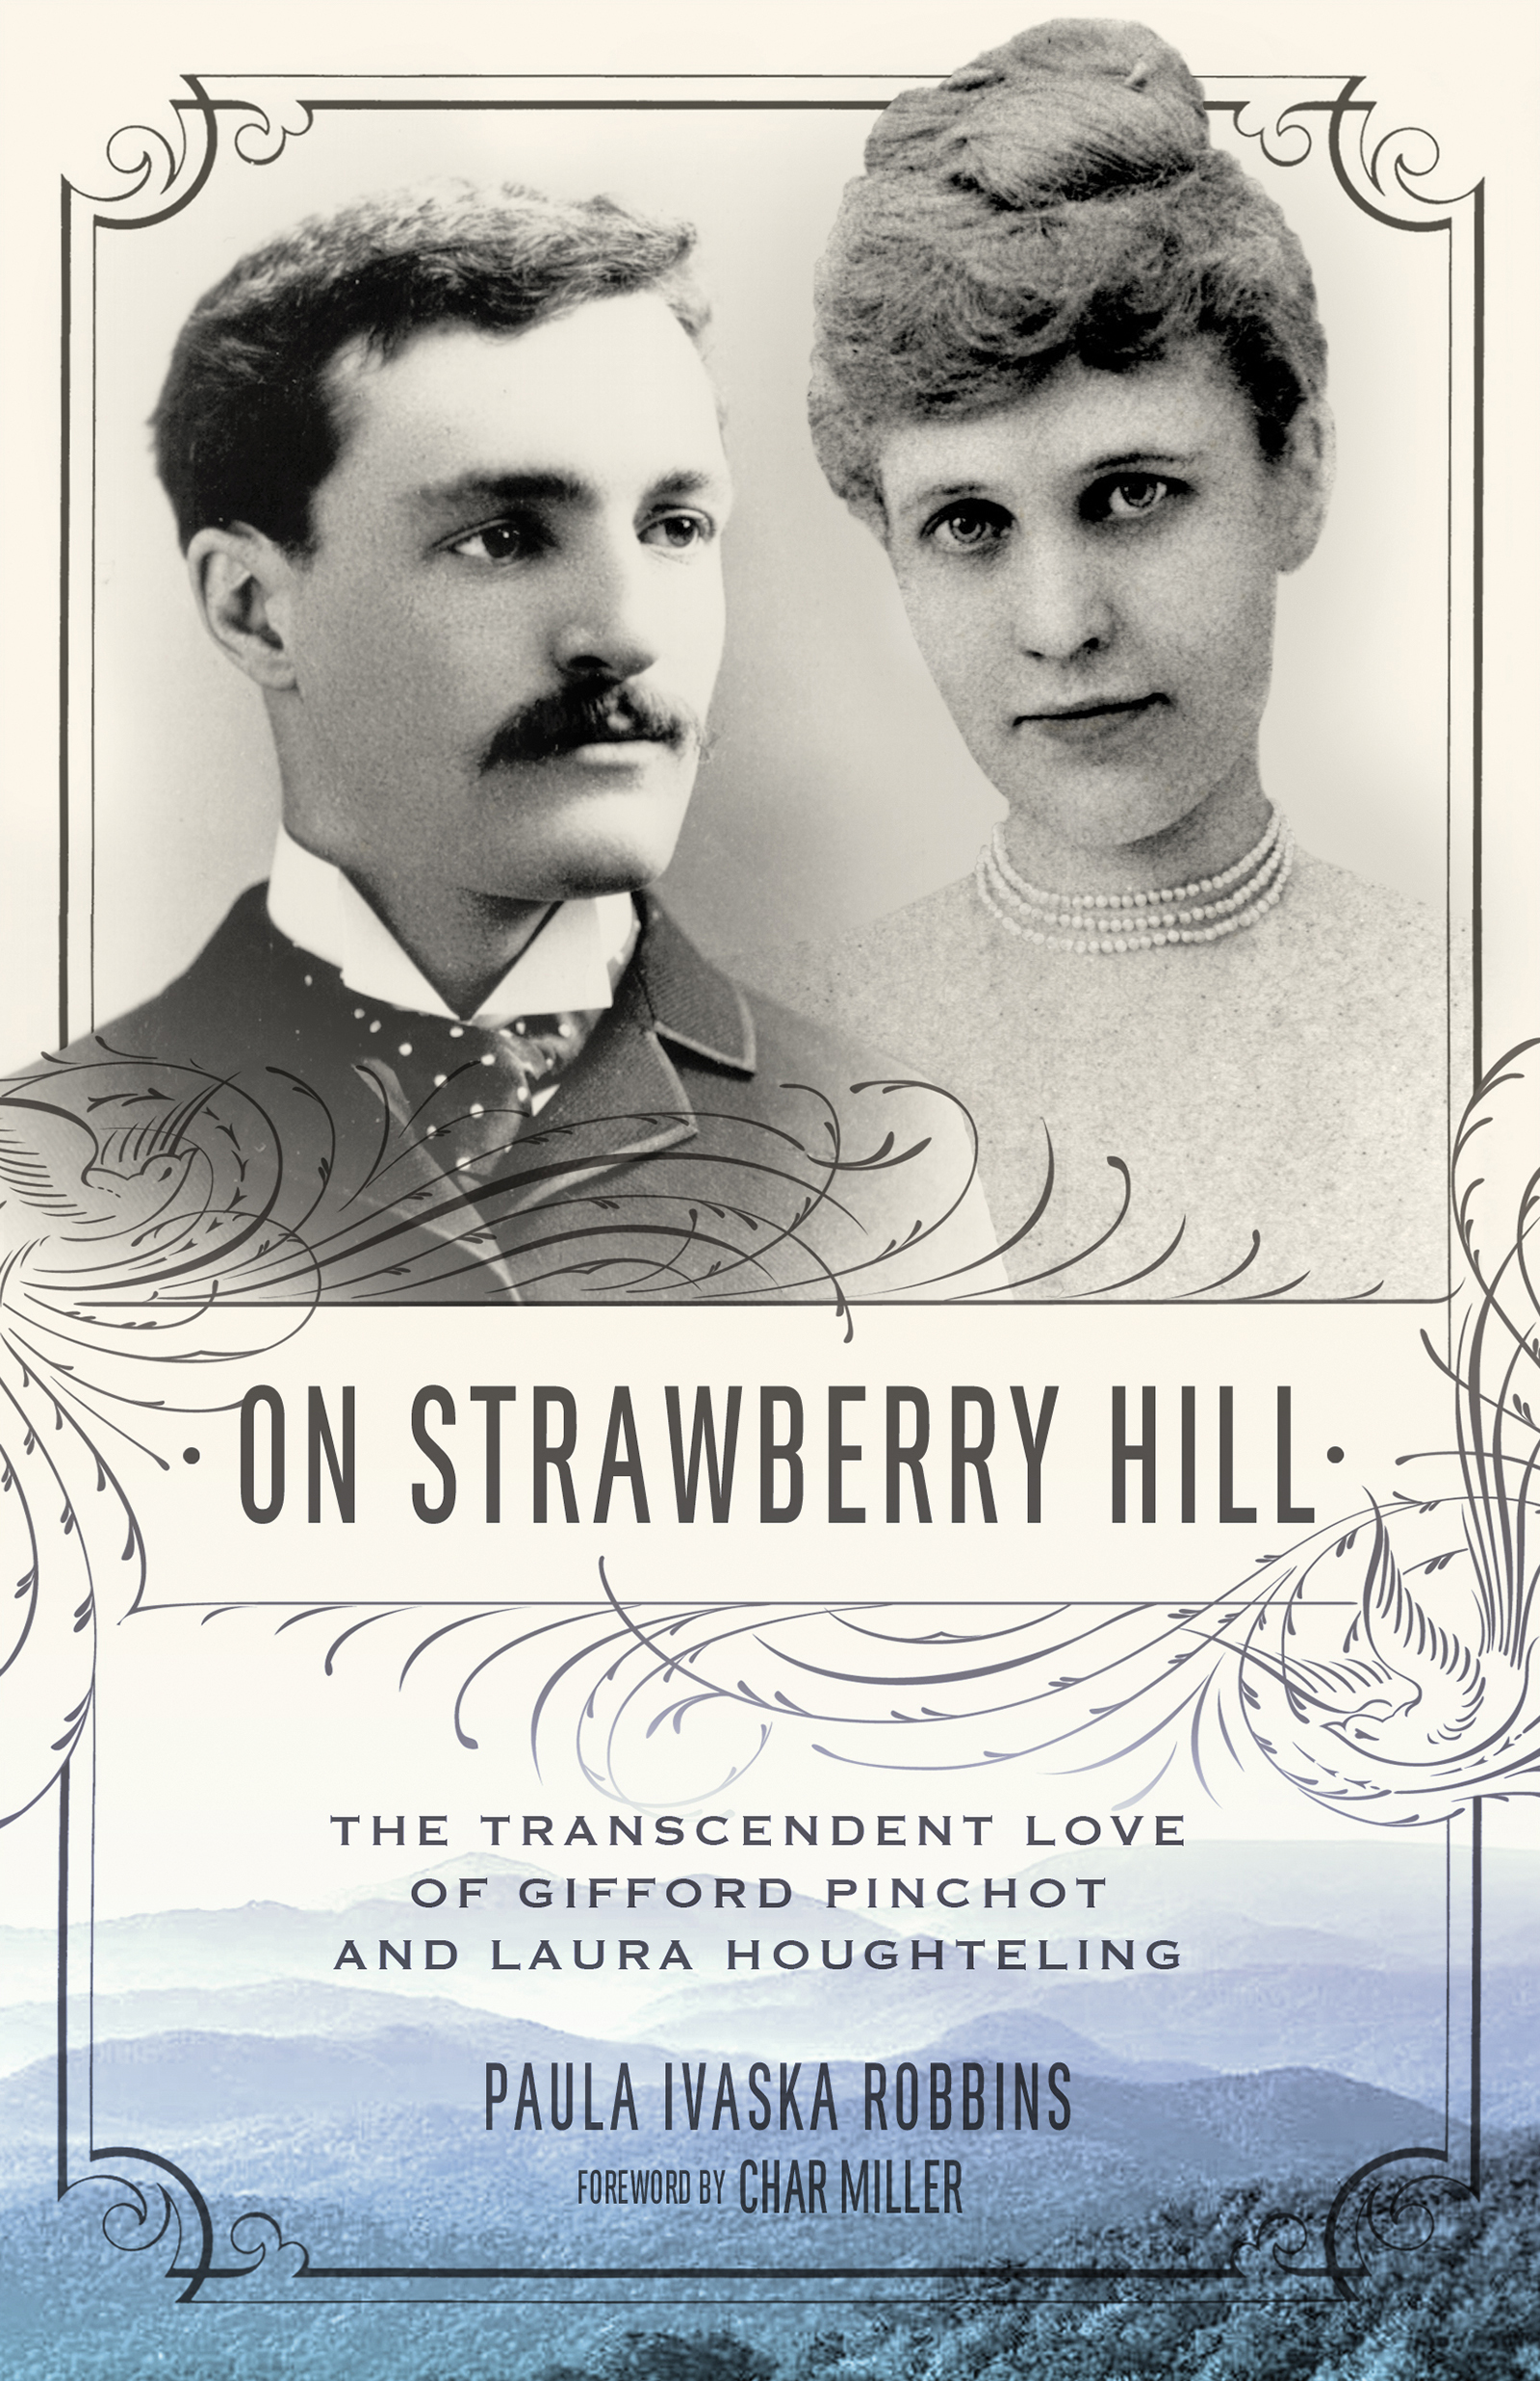 On Strawberry Hill The Transcendent Love of Gifford Pinchot and Laura Houghteling